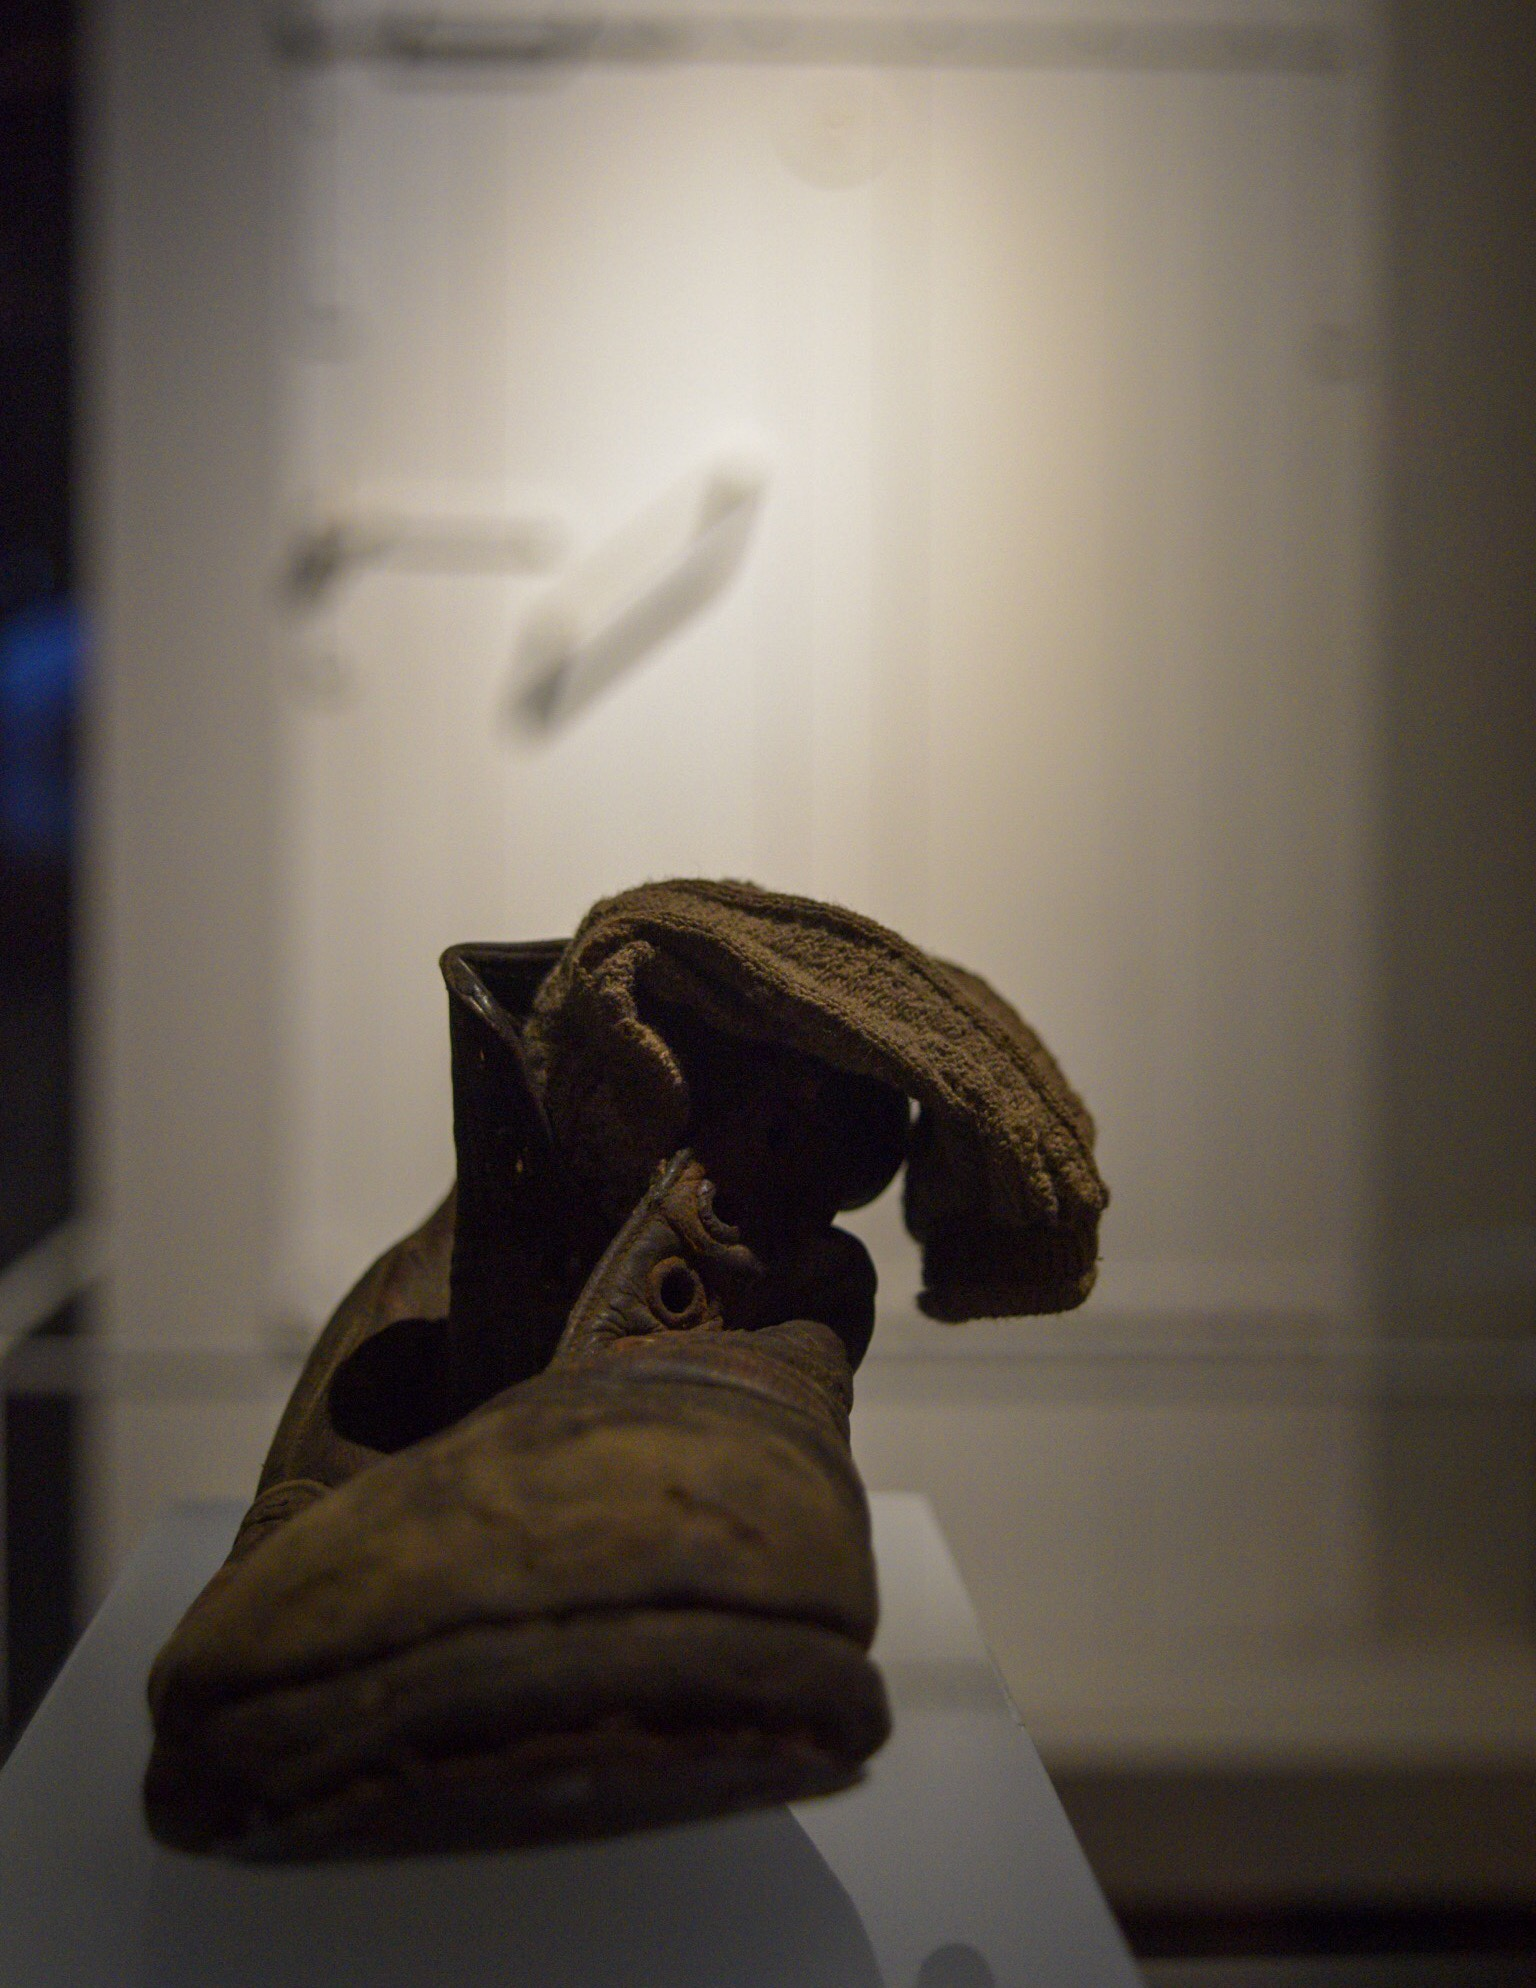 Boot found at the camp, and gas chamber door